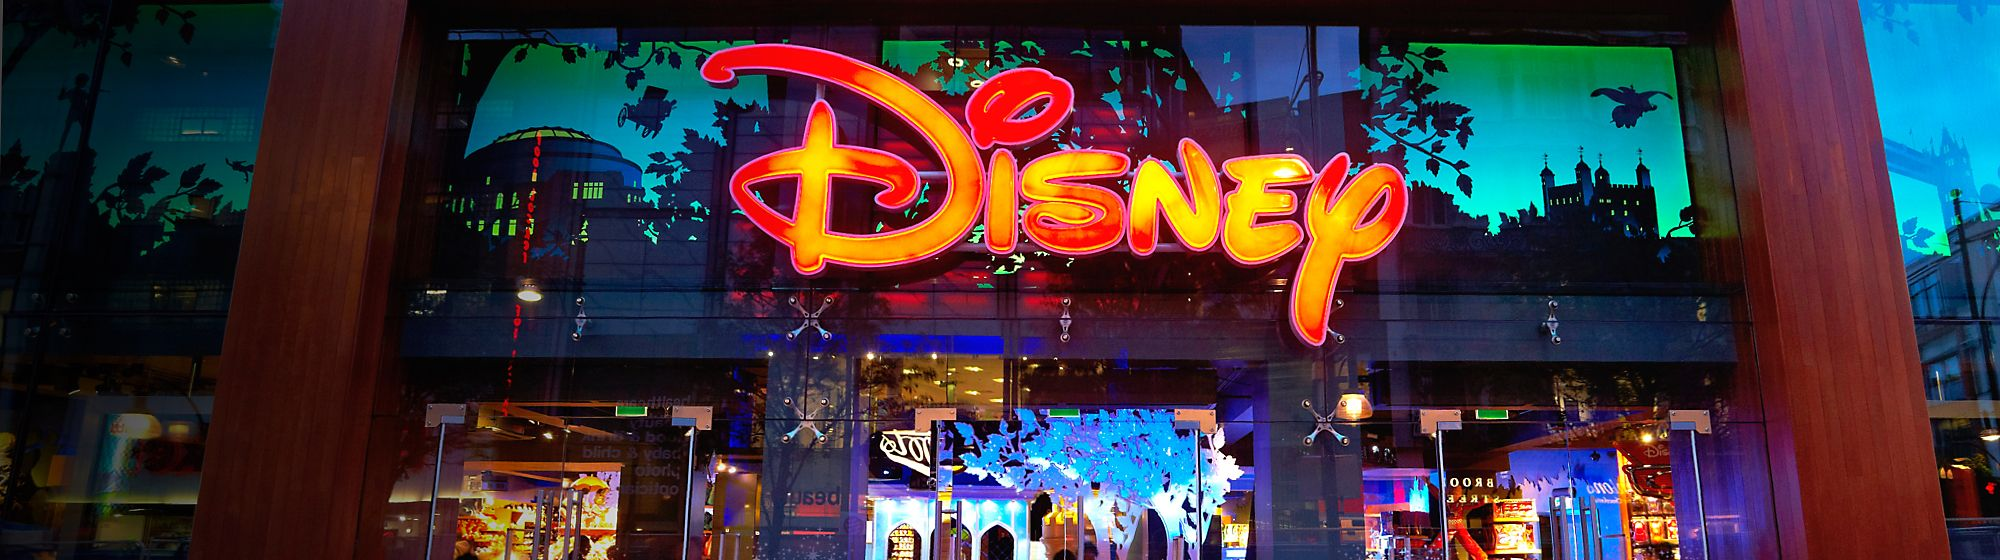 Disney Store The original home of Disney gifts, toys and clothing. Browse the brand for exclusive items featuring all your favourite Disney characters.